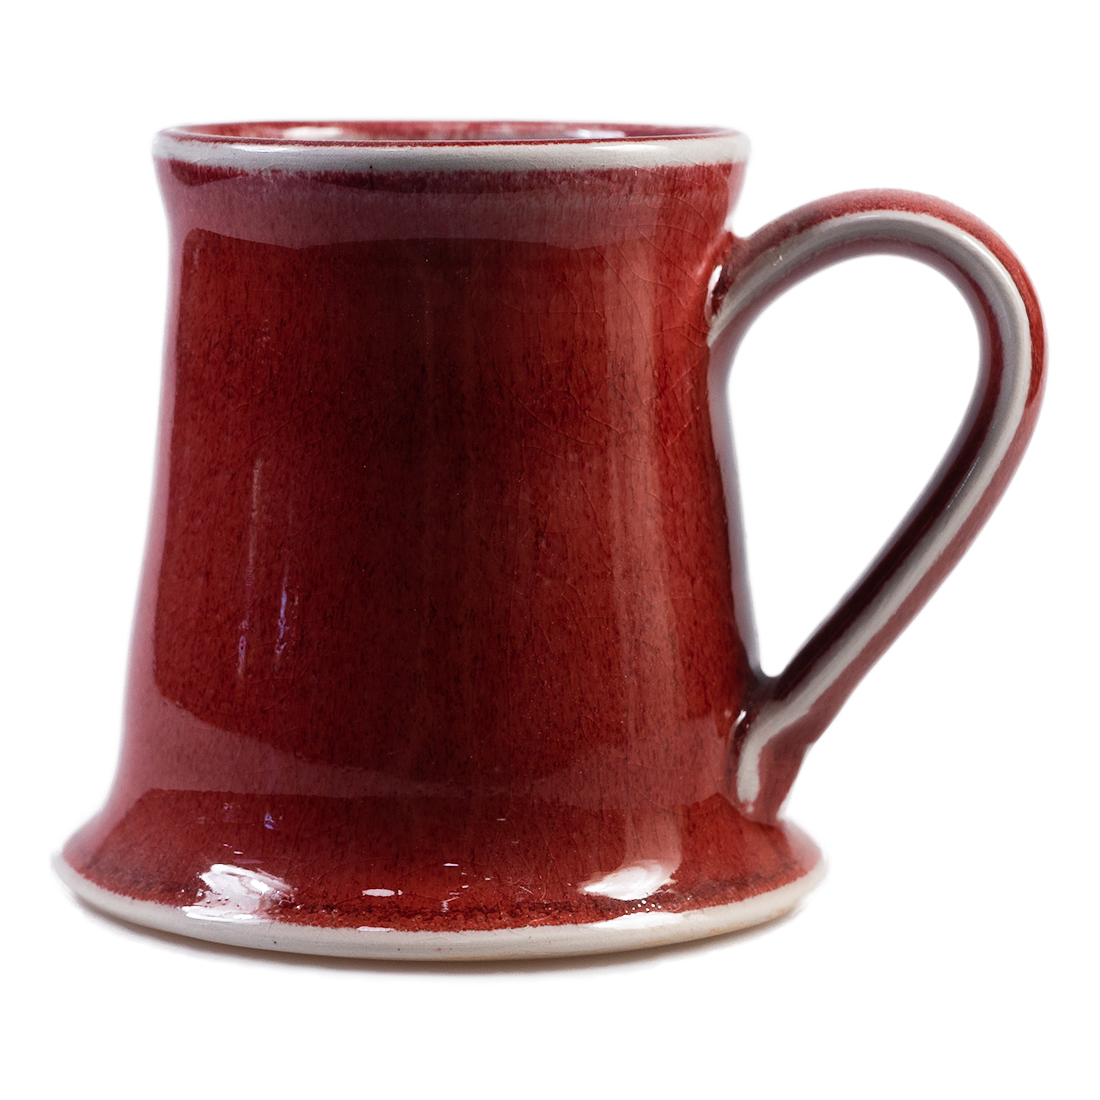 Handmade red glazed ceramic mug